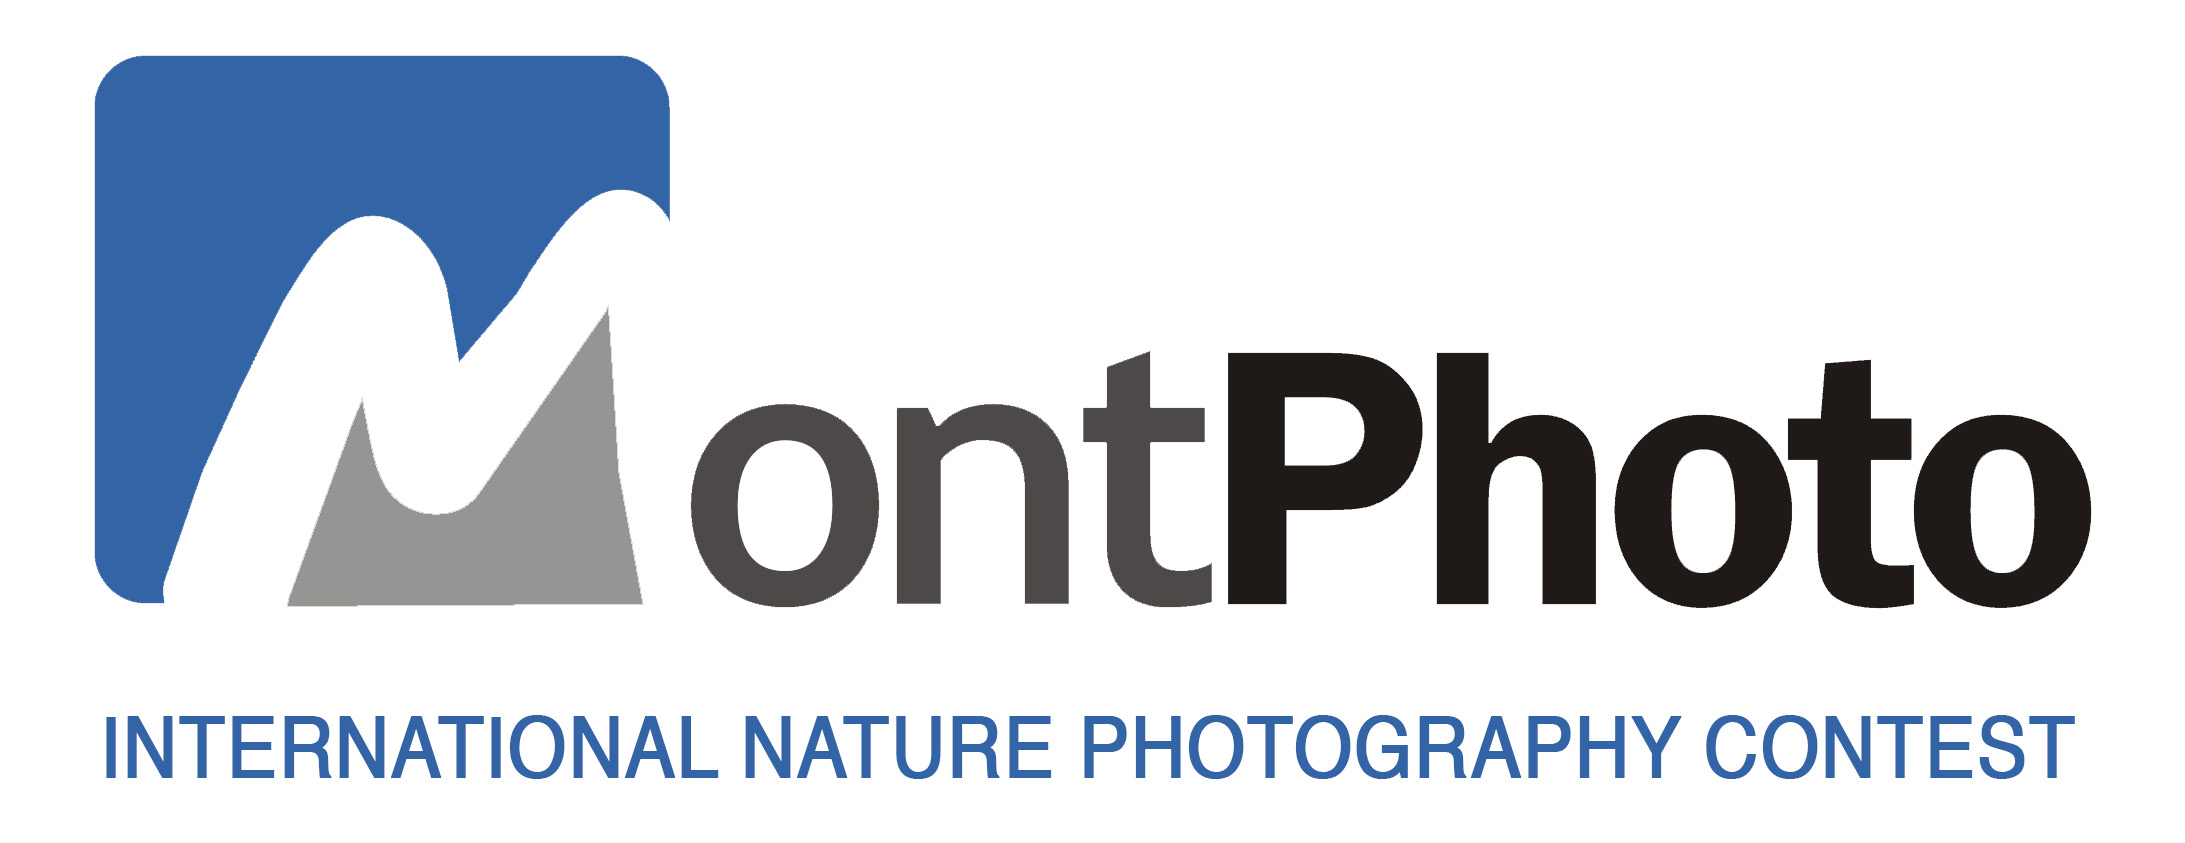 MontPhoto 2019 – INTERNATIONAL NATURE PHOTOGRAPHY CONTEST